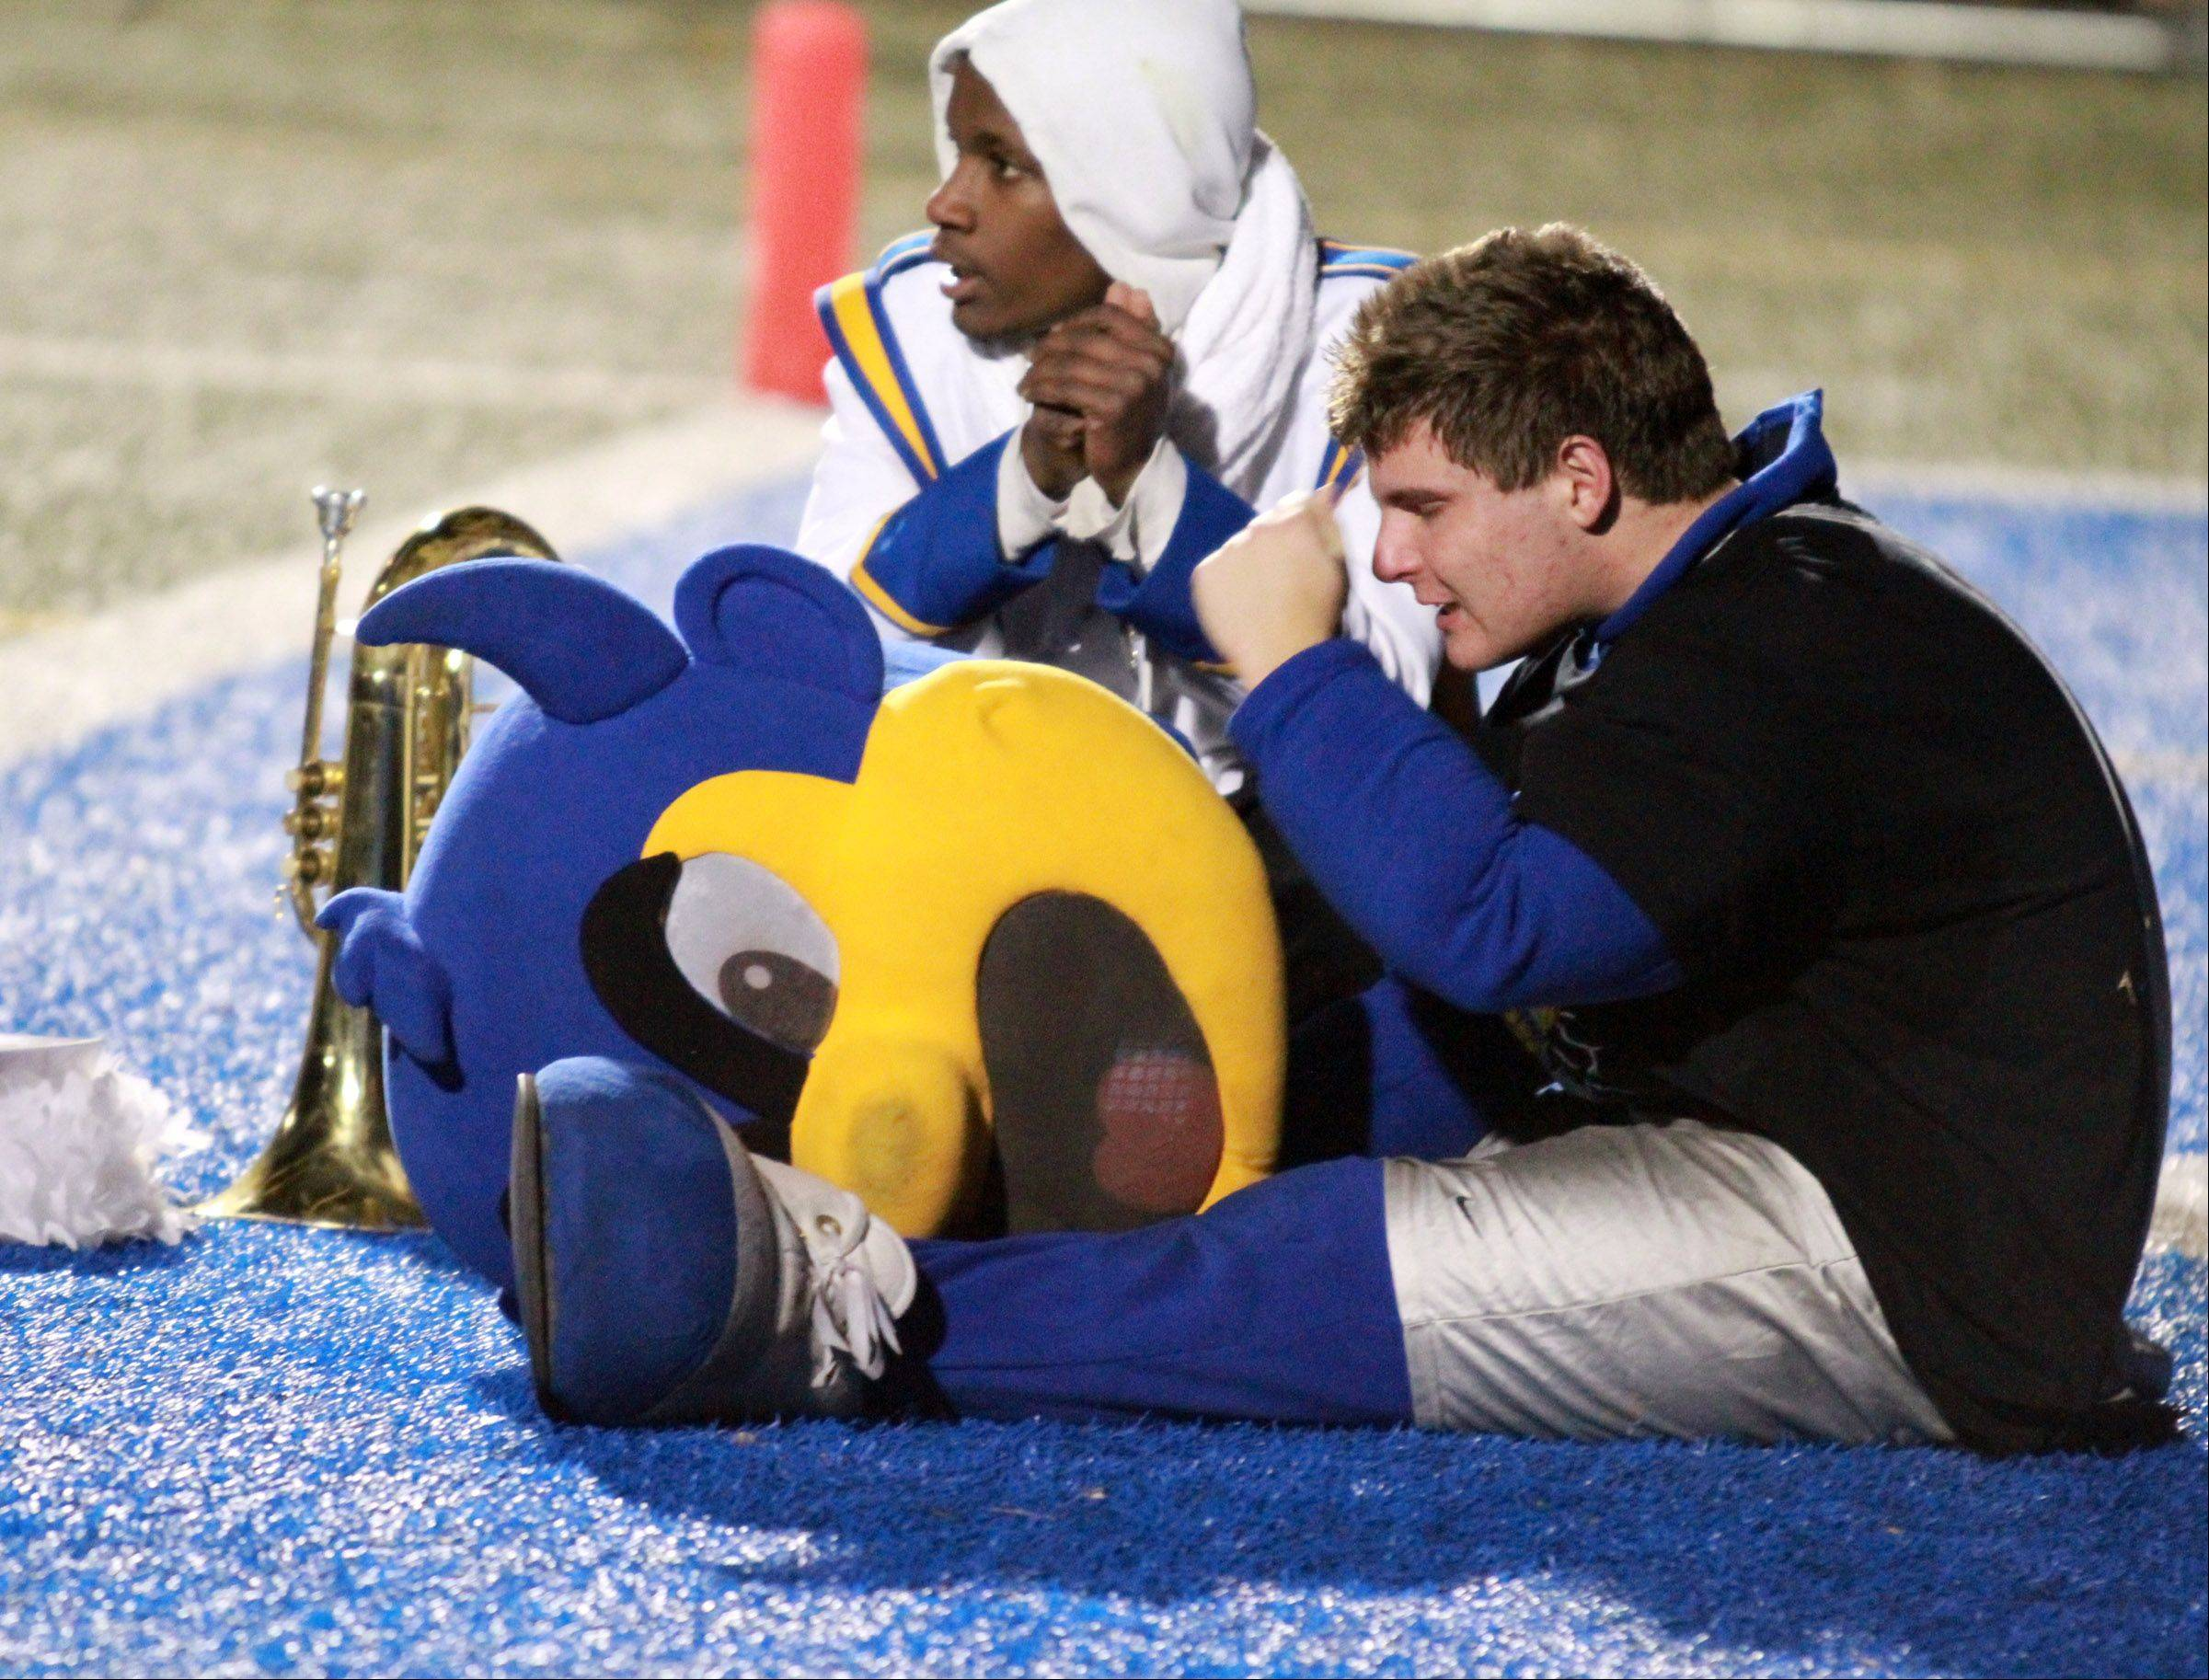 Playoffs -Round Two- Photos from the Barrington at Warren football game on Saturday, Nov. 9.